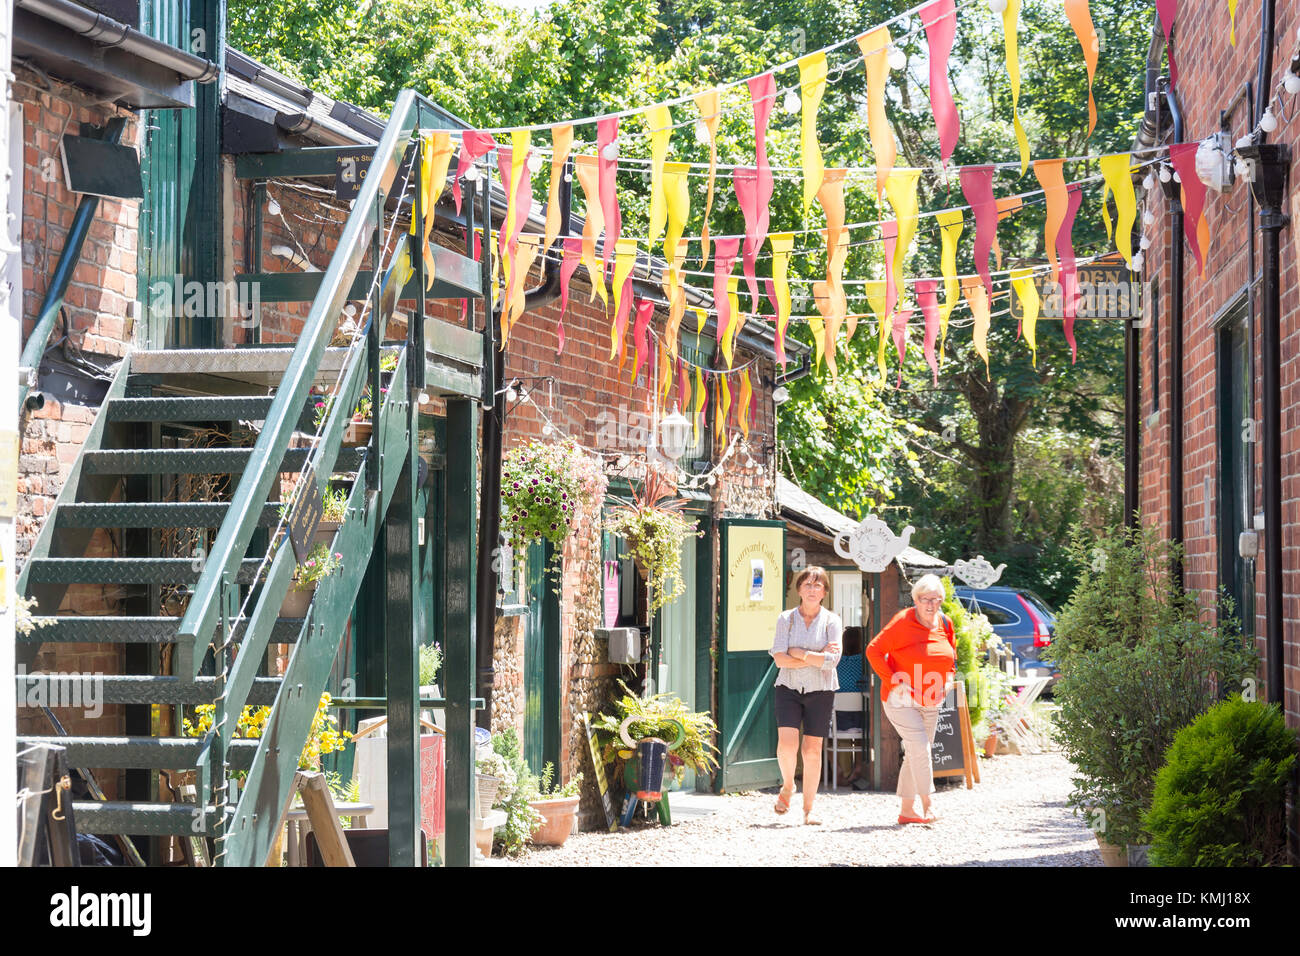 Salon de Thé Lady Grey, High Street, Wendover, Buckinghamshire, Angleterre, Royaume-Uni Photo Stock